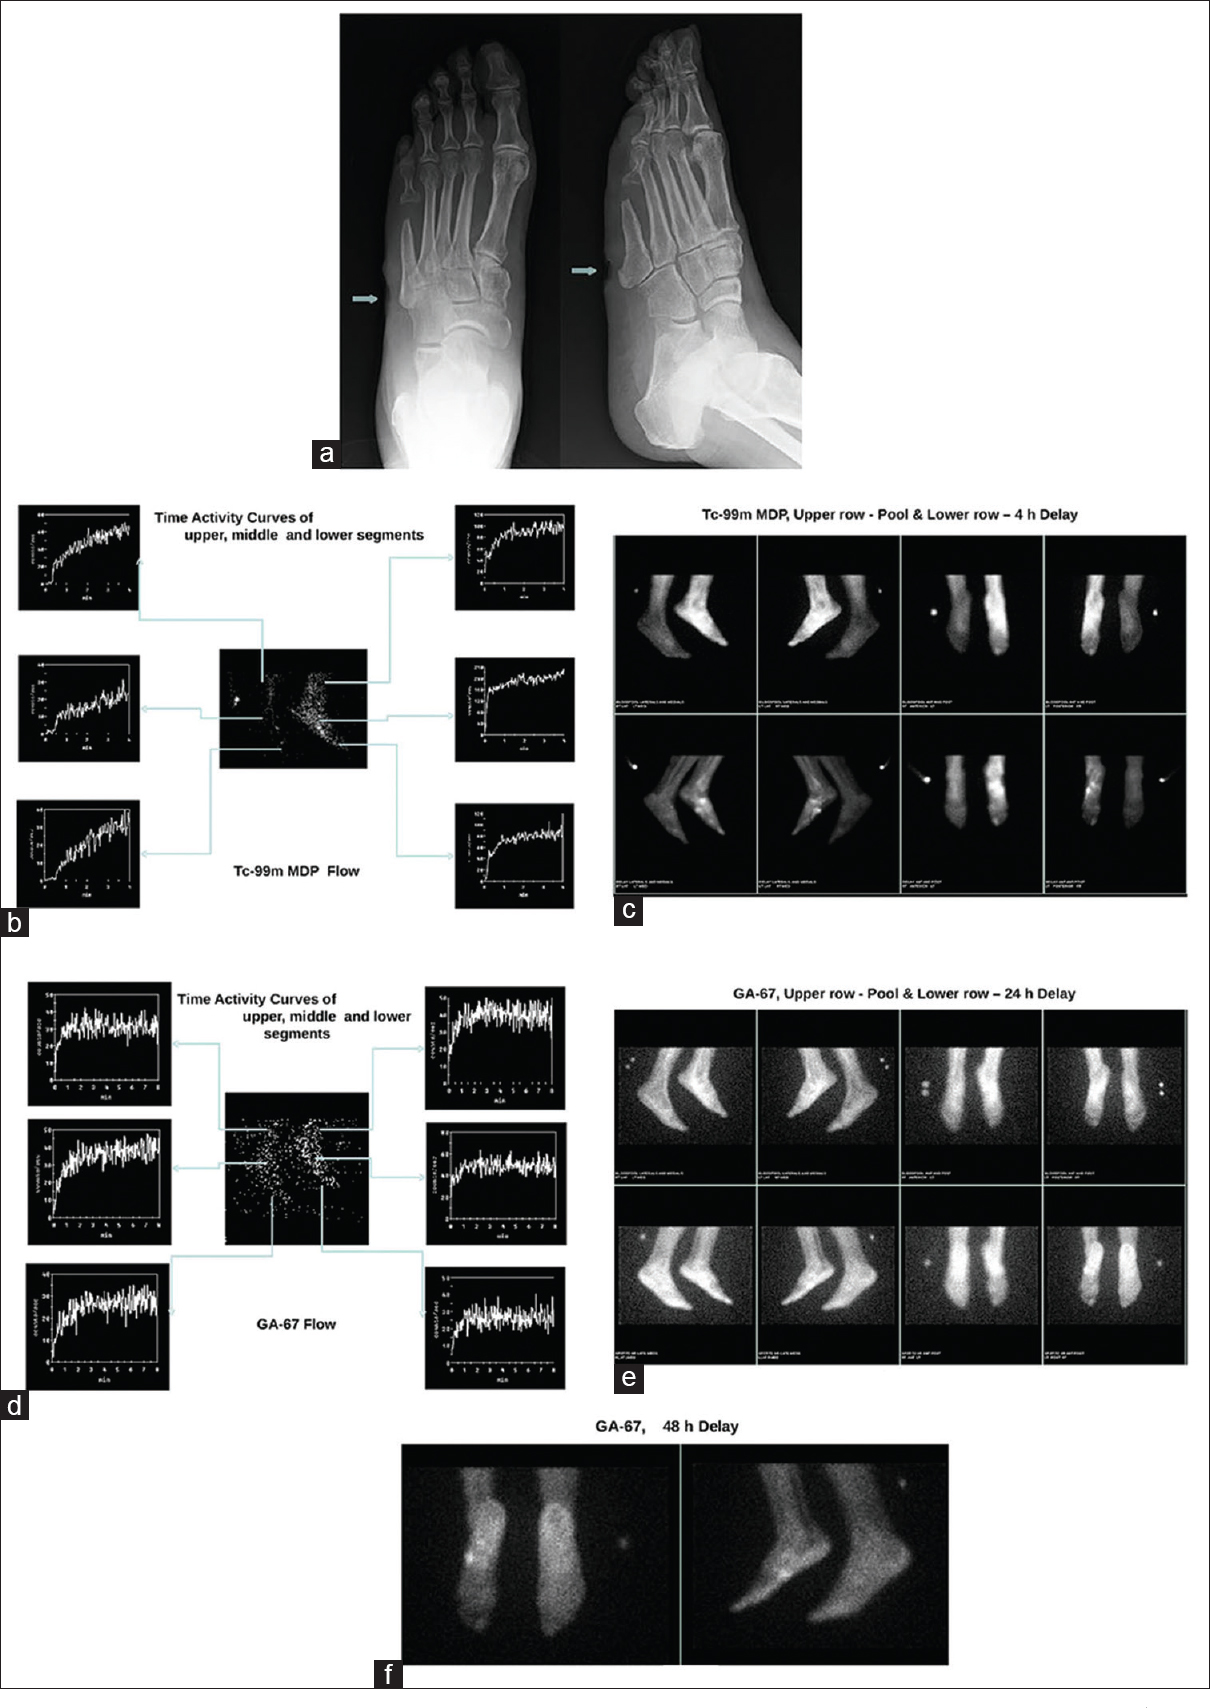 "Figure 3:(a) Plane radiograph of the left foot, reported as ""Mild soft tissue swelling and small skin ulceration at the base of the 5<sup>th</sup> metatarsal, lateral foot. No evidence of osteomyelitis."" (b) Time-activity curve after drawing region of interest in different segments of a technetium-99m-methylene diphosphonate flow image for comparison and to confirm generalized increased flow. (c) Technetium-99m-methylene diphosphonate pool and delayed images indicating generalized increased retention of radiotracer in the pool images (upper row) and focal retention of radiotracer in the region of the left 5<sup>th</sup> metatarsal base on delayed images (lower row). (d) Time-activity curve after drawing region of interest in different segments of a gallium-67 flow image for comparison and to confirm generalized increased flow. (e) Gallium-67 pool and 24 h delayed images indicating generalized increased retention of radiotracer in the pool images (upper row) and focal retention of radiotracer in the region of the left 5<sup>th</sup> metatarsal base on delayed images (lower row). (f) Gallium-67 pool and 48 h delayed images indicating focal retention of radiotracer in the region of the left 5<sup>th</sup> metatarsal base"